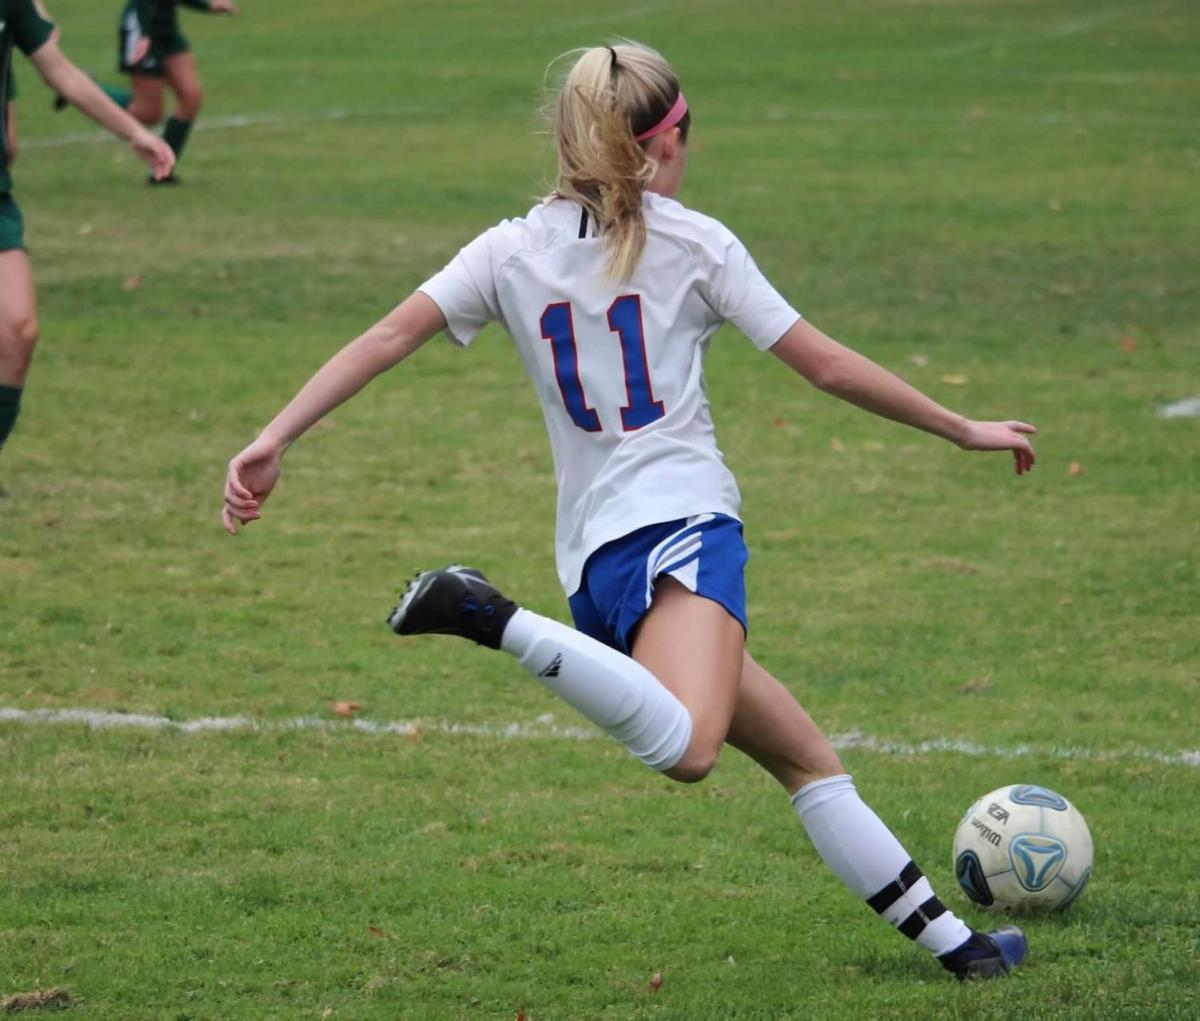 With her fast footwork, senior Olivia Stowell helps her team win the game against Dover, 5-1.